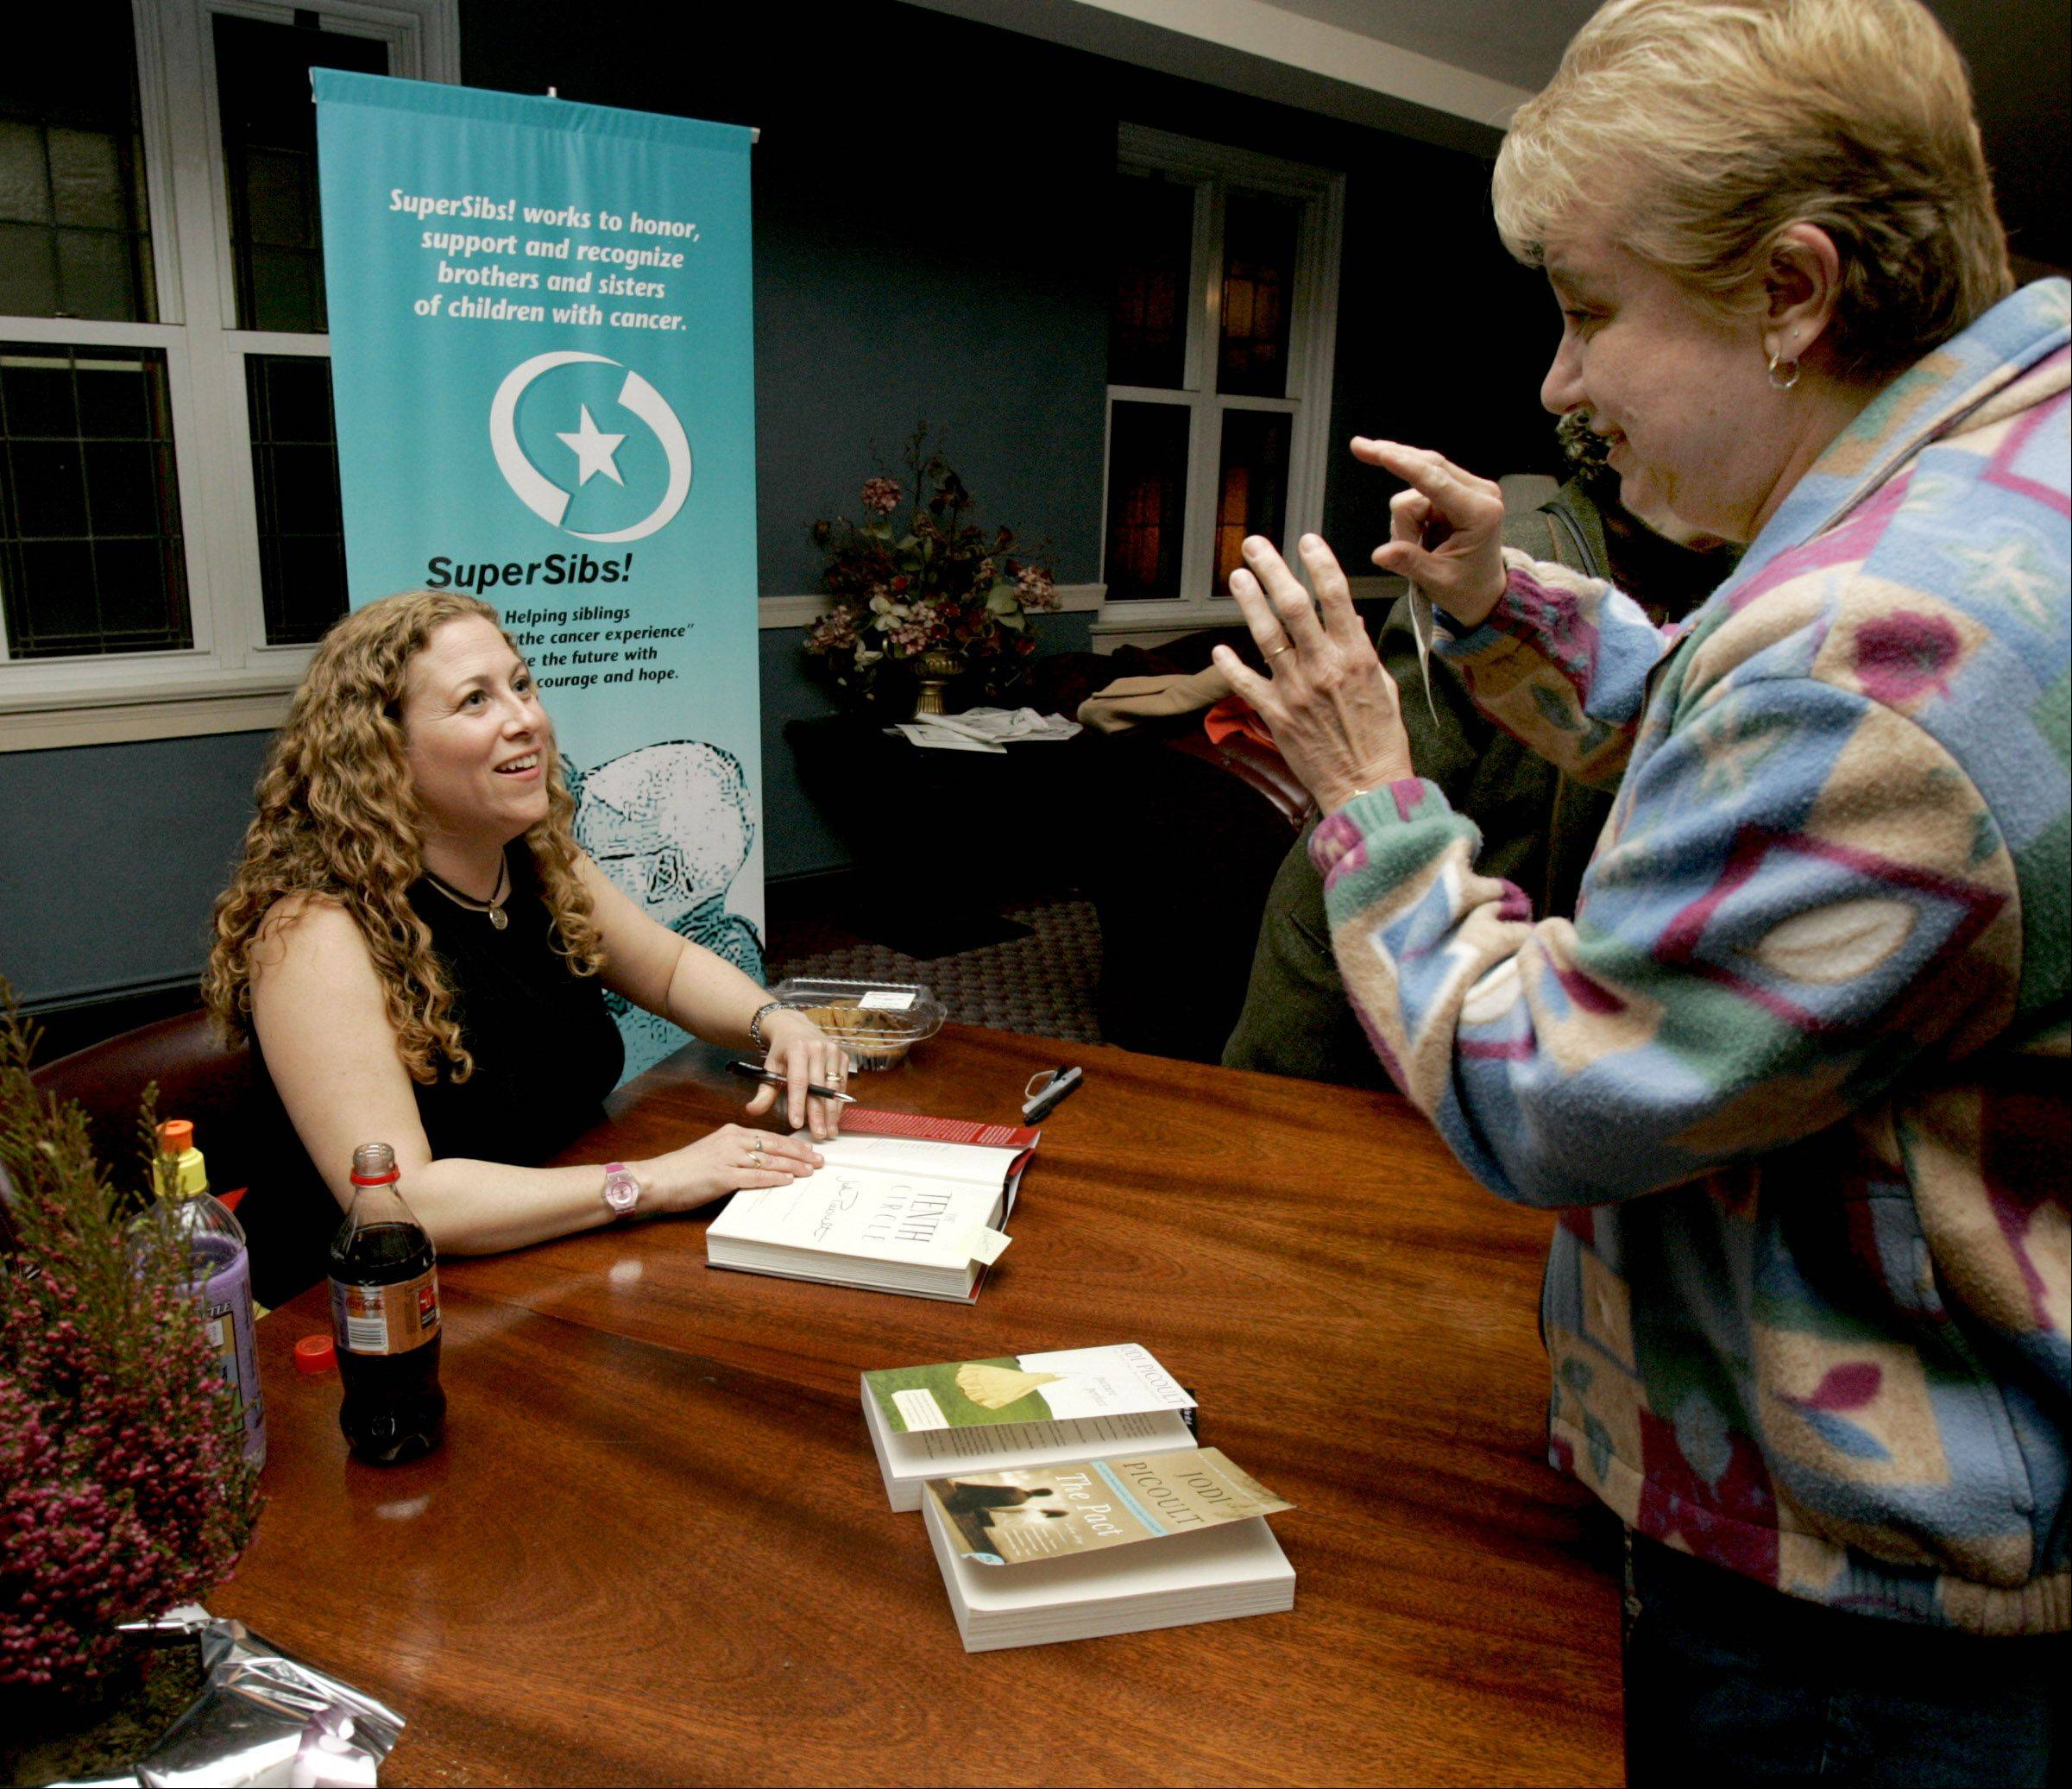 Naperville READS has brought well-known authors such as Jodi Picoult to Naperville since it began in 2002. This year's program features 12 authors who will give pep rally-style presentations in teams of three for local students and community members Feb. 3-6.